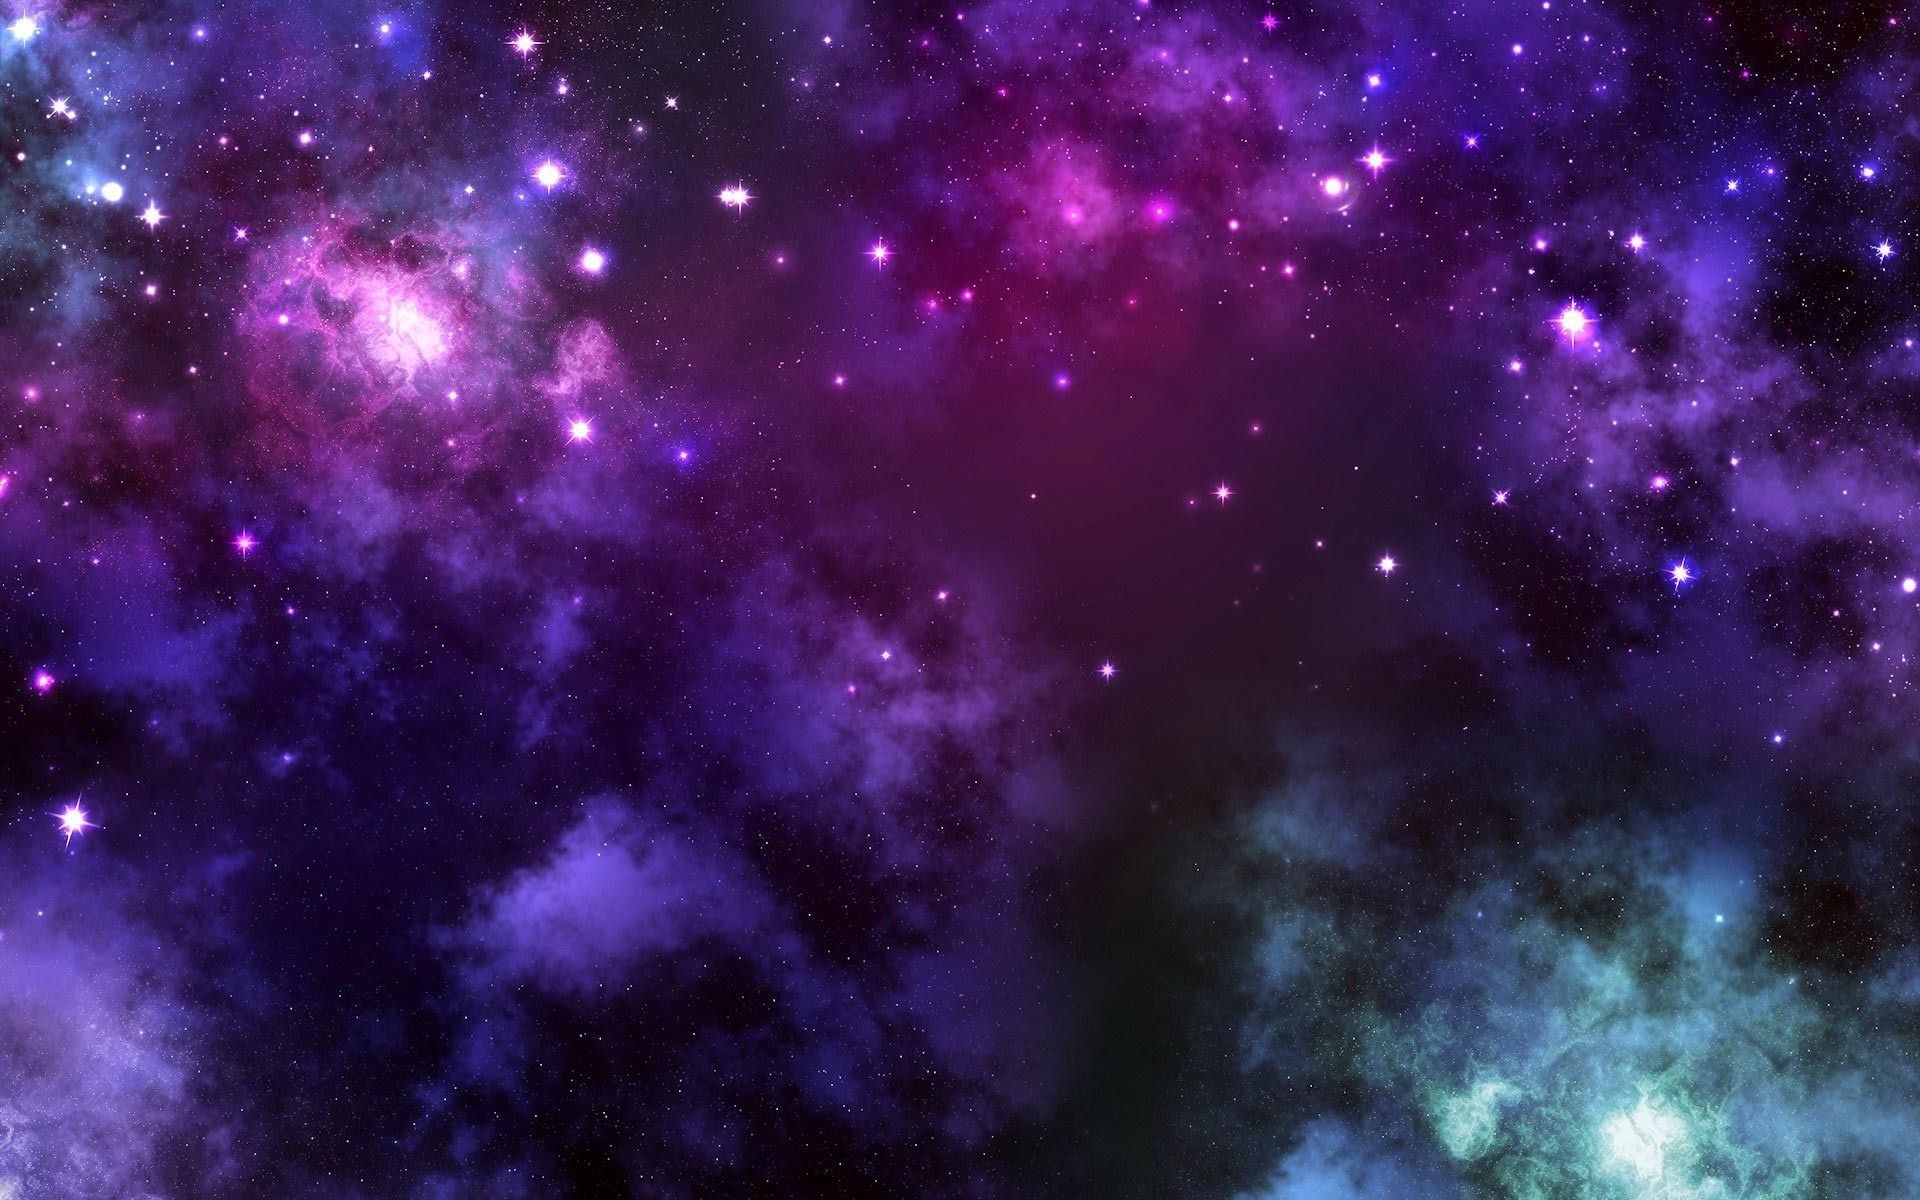 image - purple-galaxy-wallpaper-hd | animal jam clans wiki